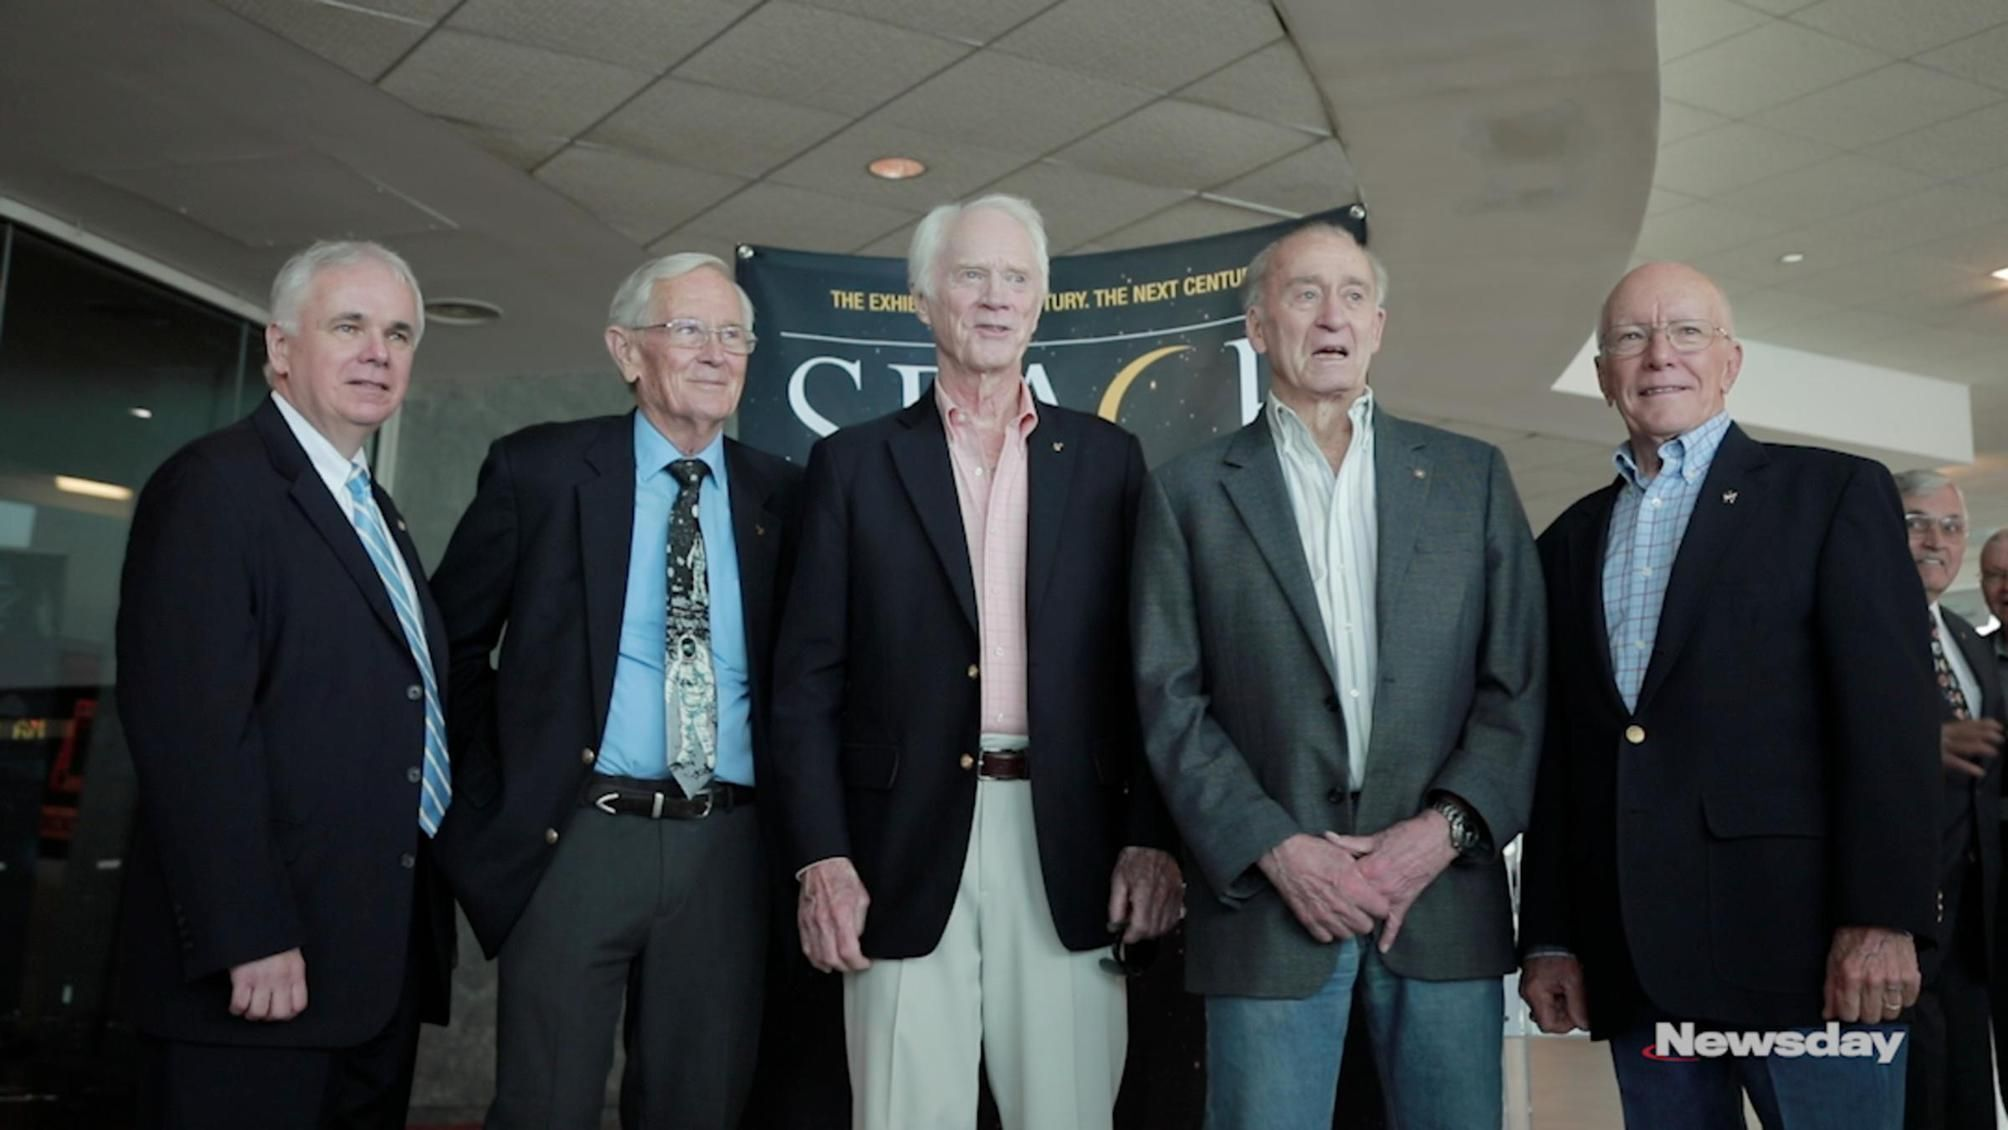 Astronauts, Grumman workers reunite at Apollo 50th anniversary event at museum